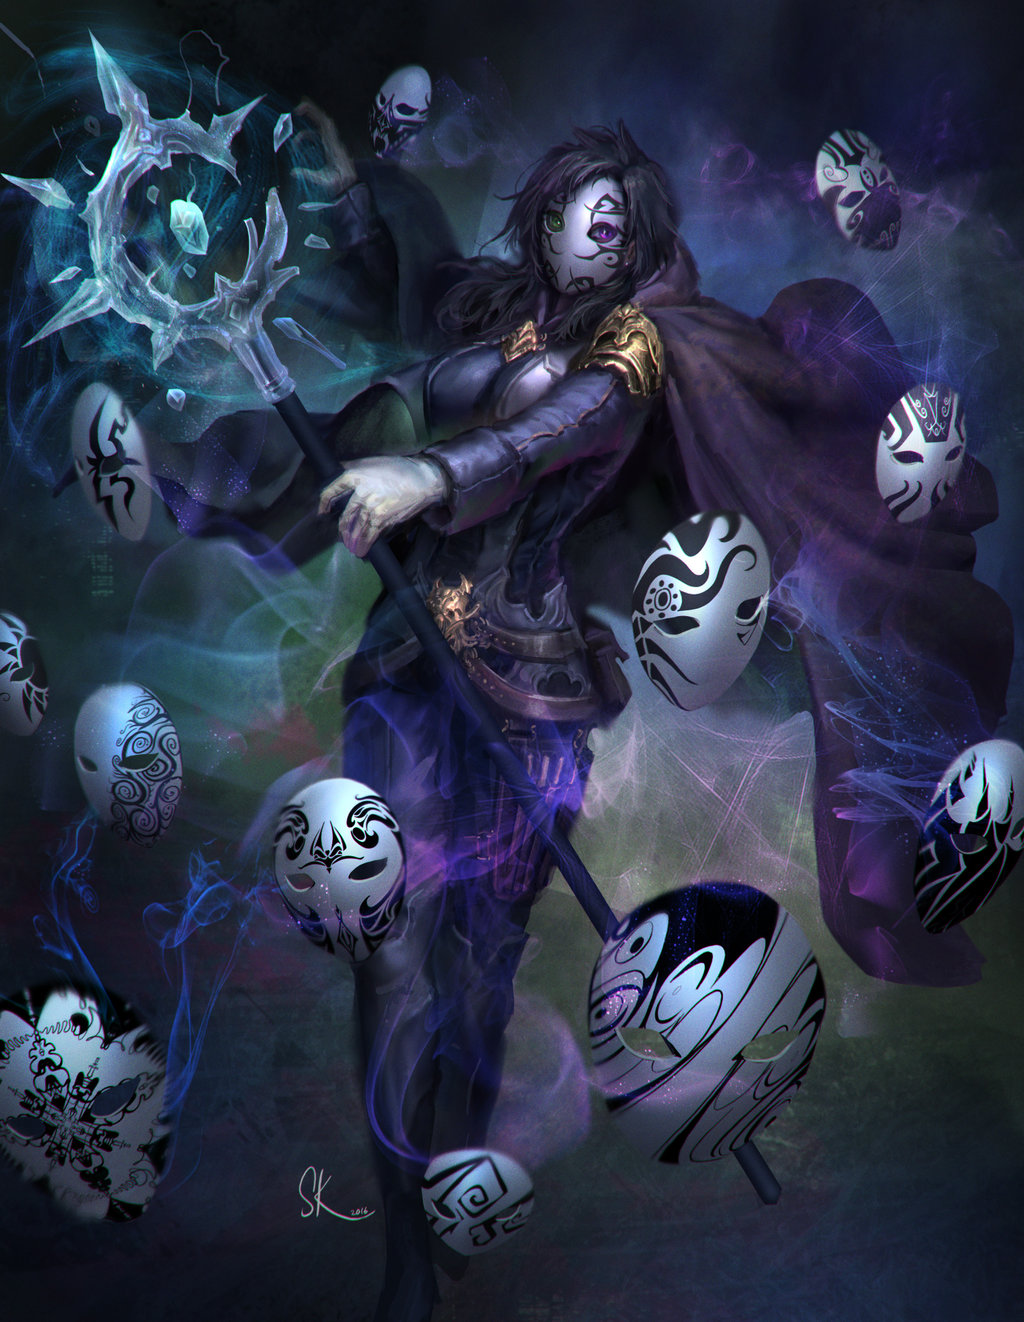 commission___the_witch_of_a_thousand_faces_by_sktneh-d9oj4wi.jpg